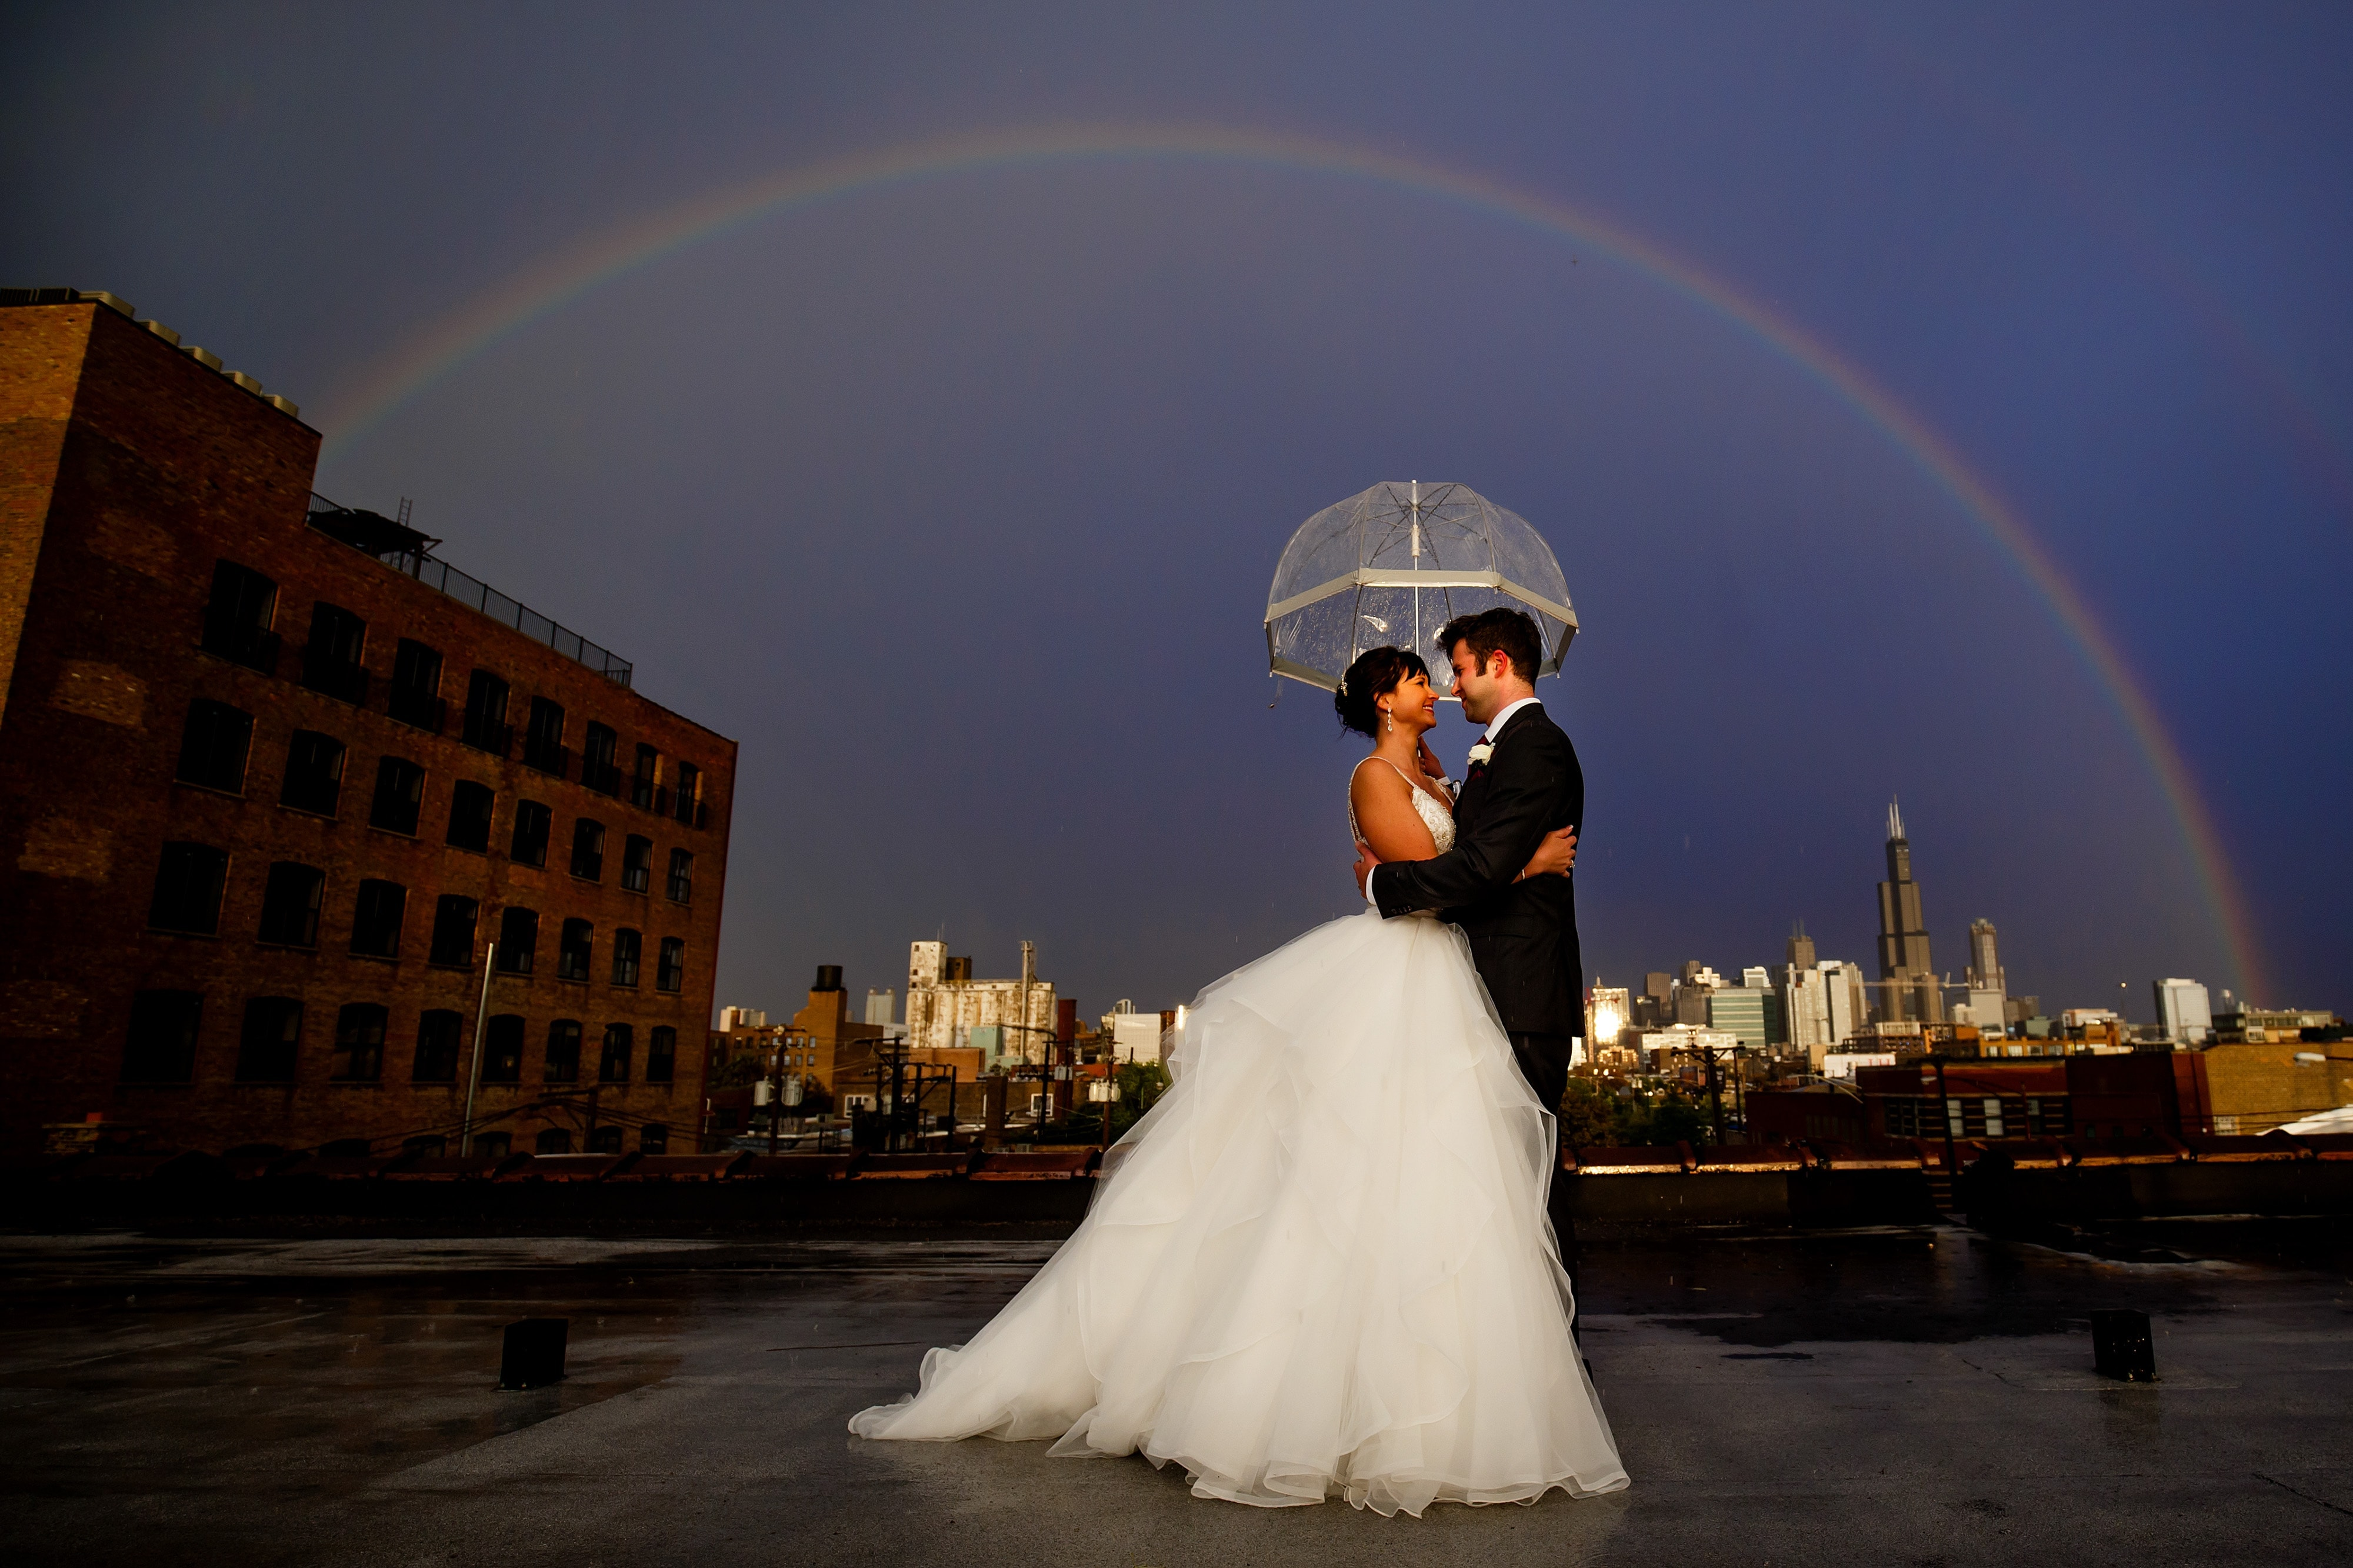 Chelsea and Ori embrace under an umbrella as they're surrounded by a rainbow on the rooftop during their Room 1520 wedding in Chicago